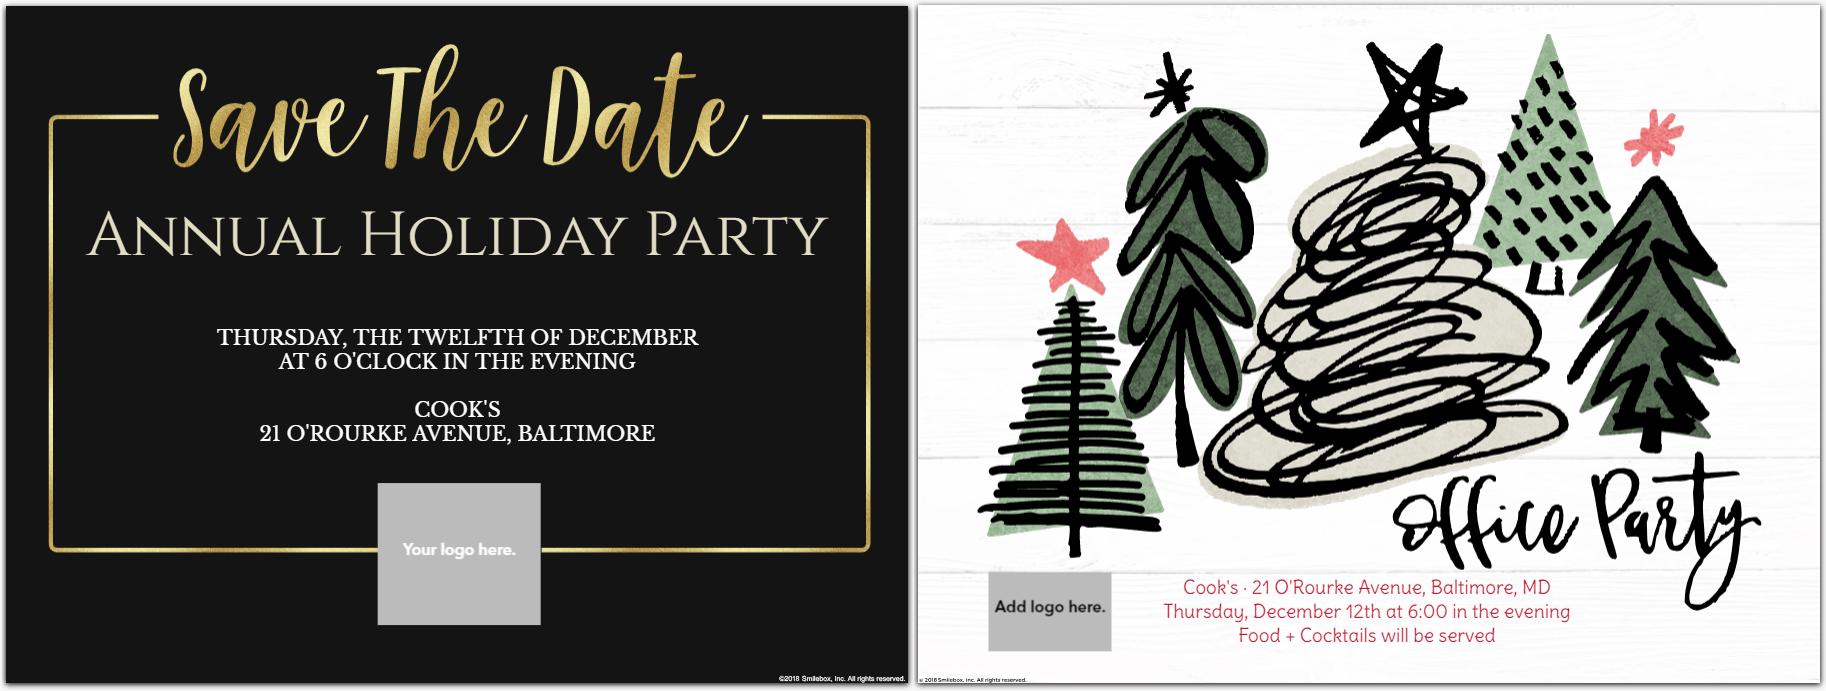 Company Holiday Party Templates